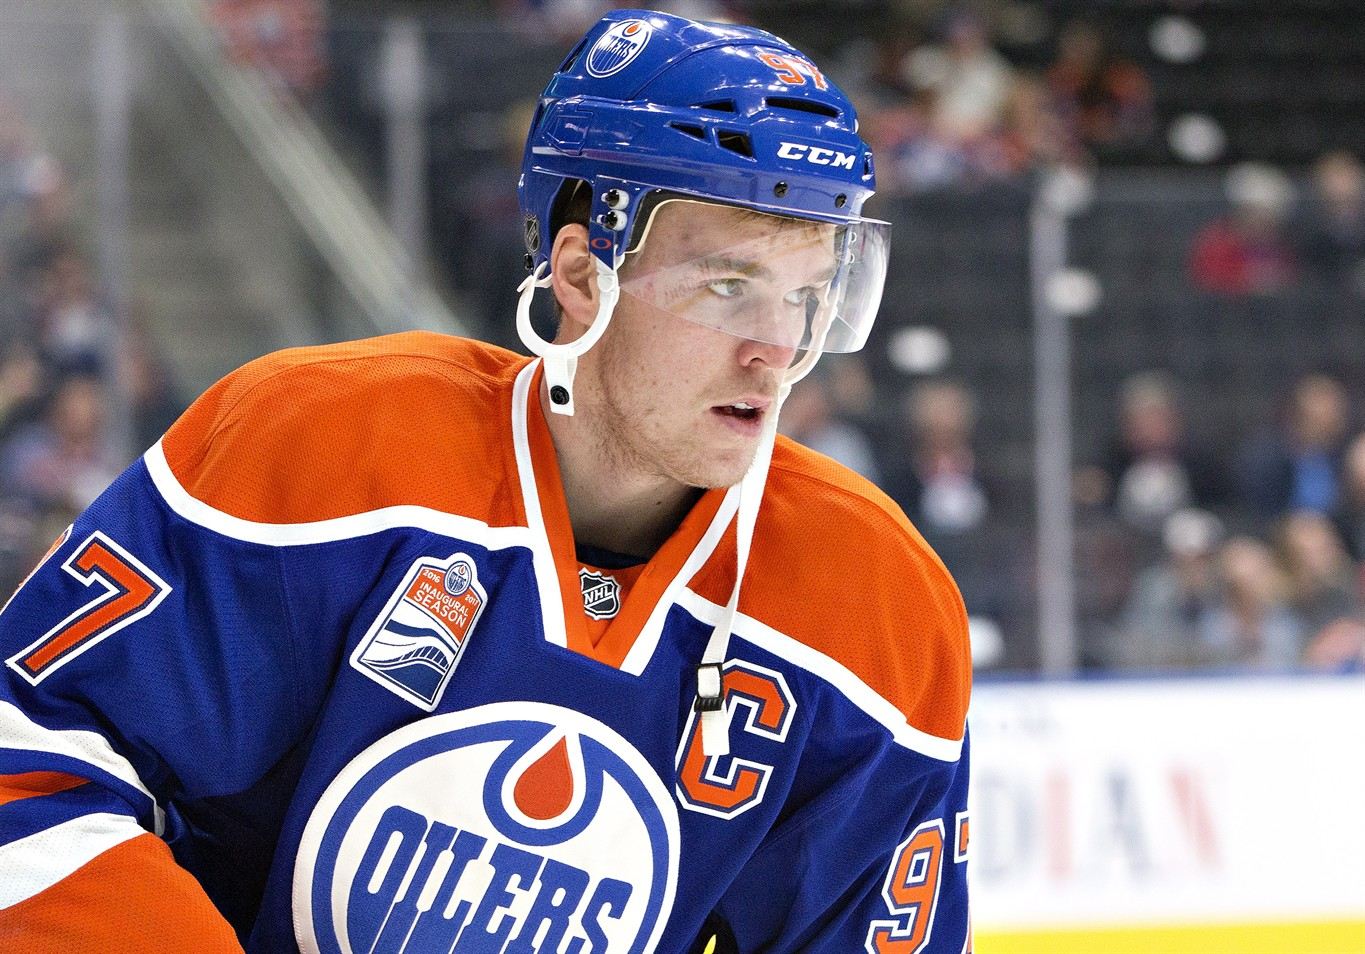 new product e9236 323e8 Connor McDavid 'right guy' to be Oilers captain, says Hall ...